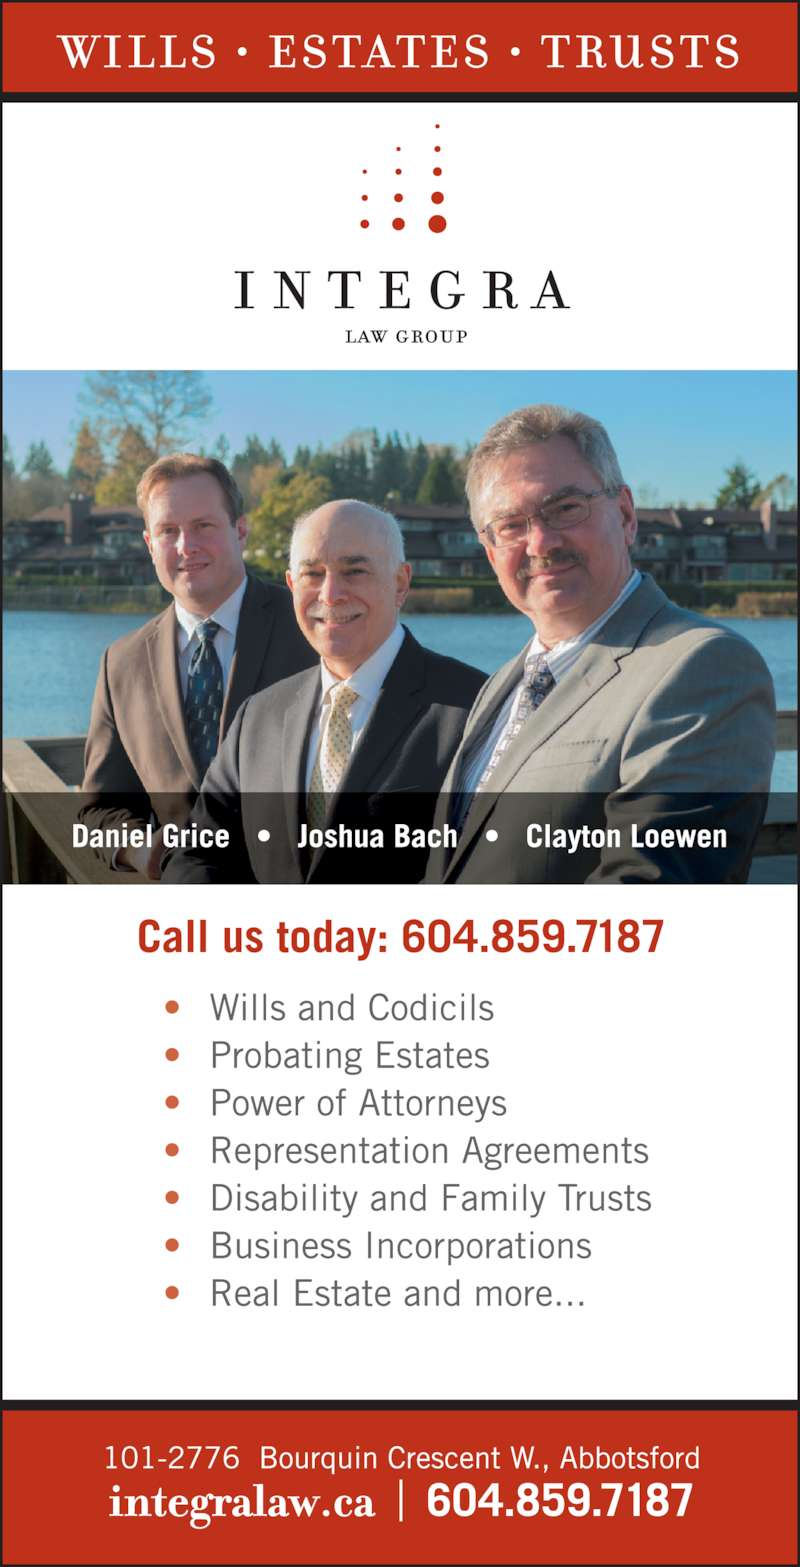 Integra Law Group (6048597187) - Display Ad - Probating of Estates Representation Agreements Powers of Attorney Administration of Estates Trust Agreements Committeeships Wills Prepared integralaw.ca call or visit us today 604-859-7187 F. CLAYTON LOEWEN Barrister & Solicitor JOSHUA M. BACH EXPERIENCED     RELIABLE     KNOWLEDGEABLE Wills, Estates & Trusts 101-2776 Bourquin Crescent West, Abbotsford, BC  V2S 6A4